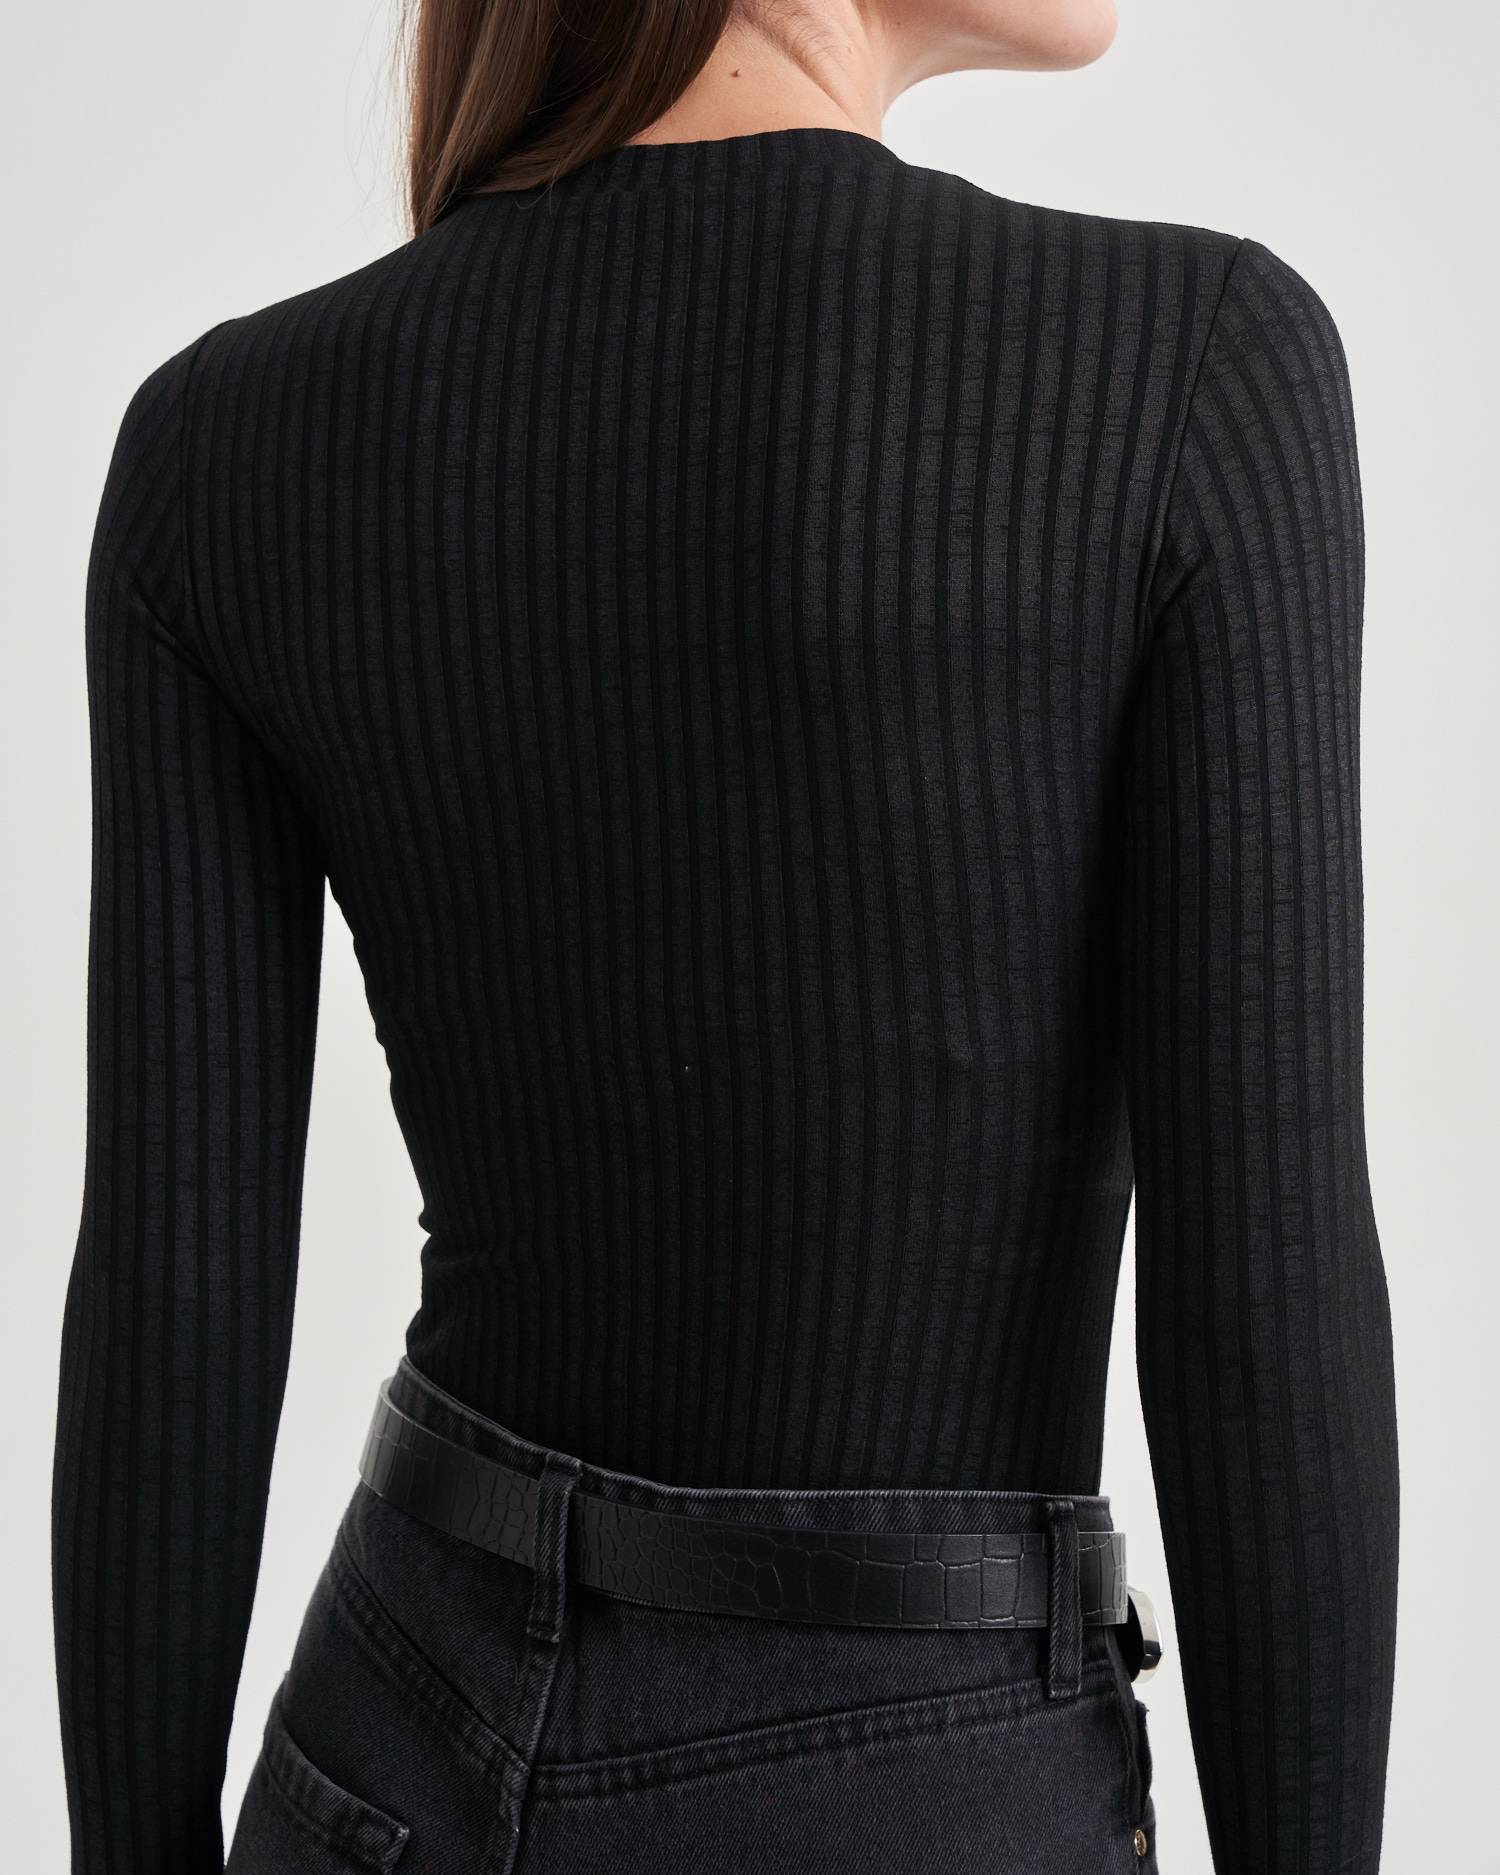 Knit mock-neck